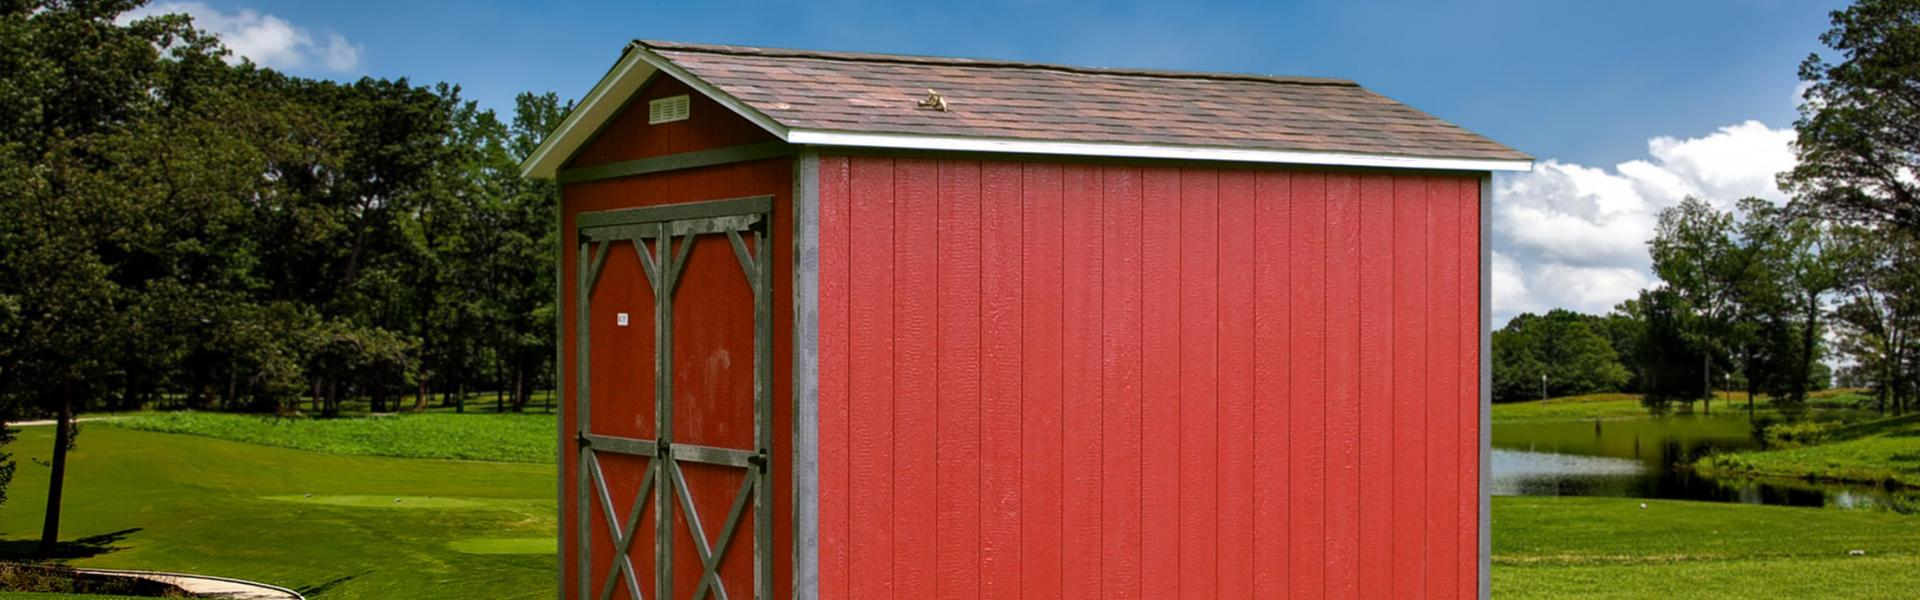 Painted Utility Sheds Raber Portable Storage Barns